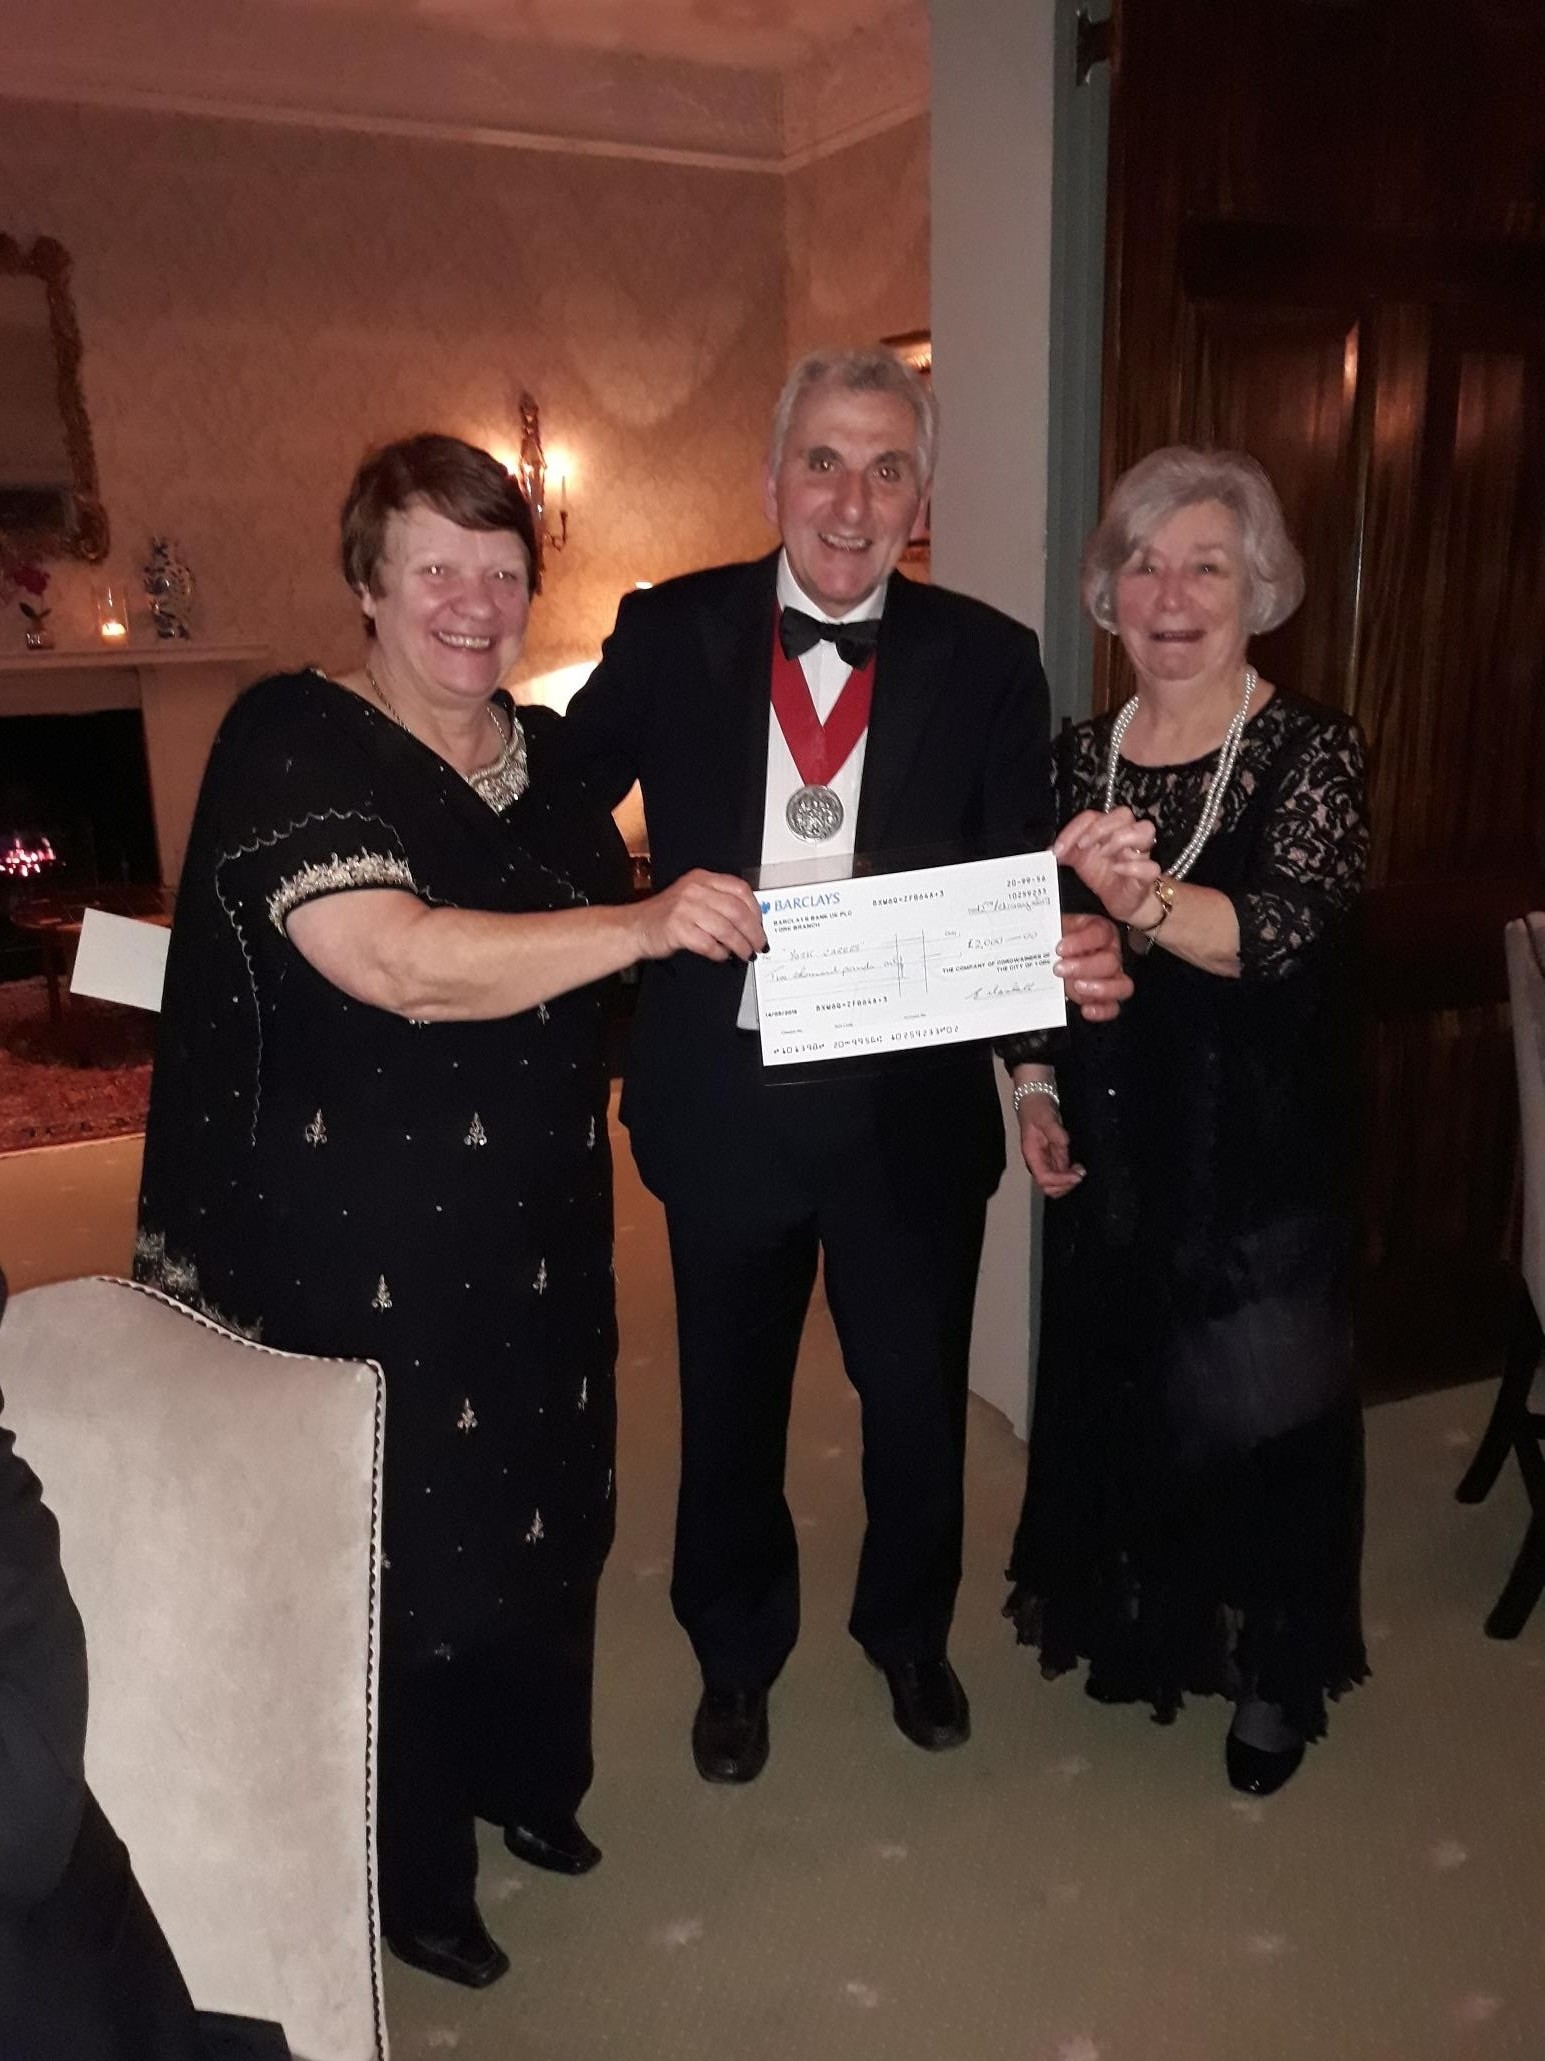 The Master of the Company of Cordwainers of the City of York, John Apps, handing over a £2000 cheque to York Young Carers' chair of trustees, Rosemary Temple and trustee Jackie Chapman